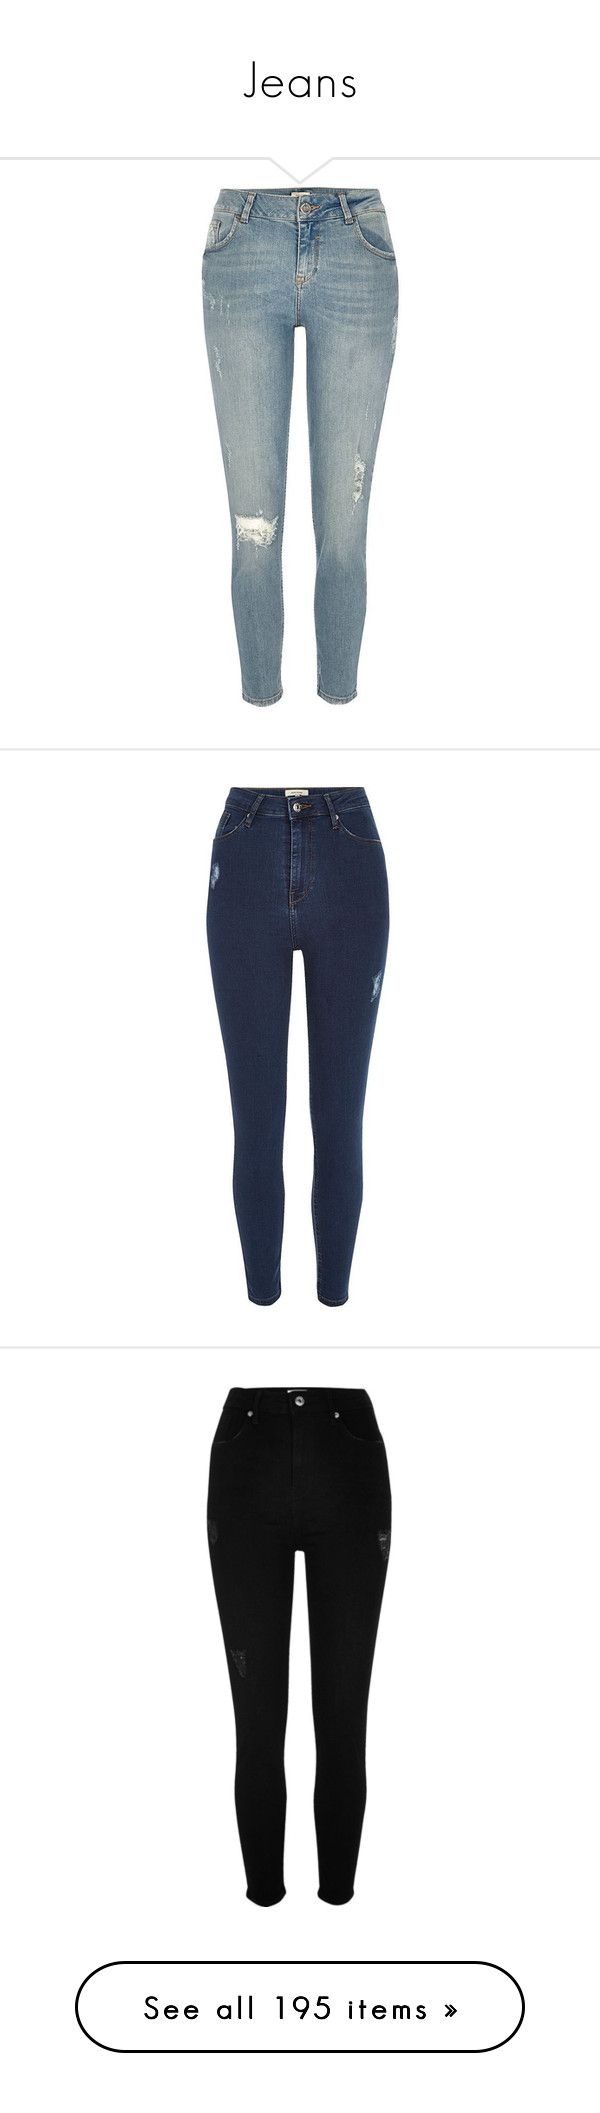 """Jeans"" by piggy-nl ❤ liked on Polyvore featuring jeans, super skinny jeans, blue skinny jeans, ripped skinny jeans, denim jeans, ripped jeans, skinny jeans, women, high waisted jeans and destroyed skinny jeans"